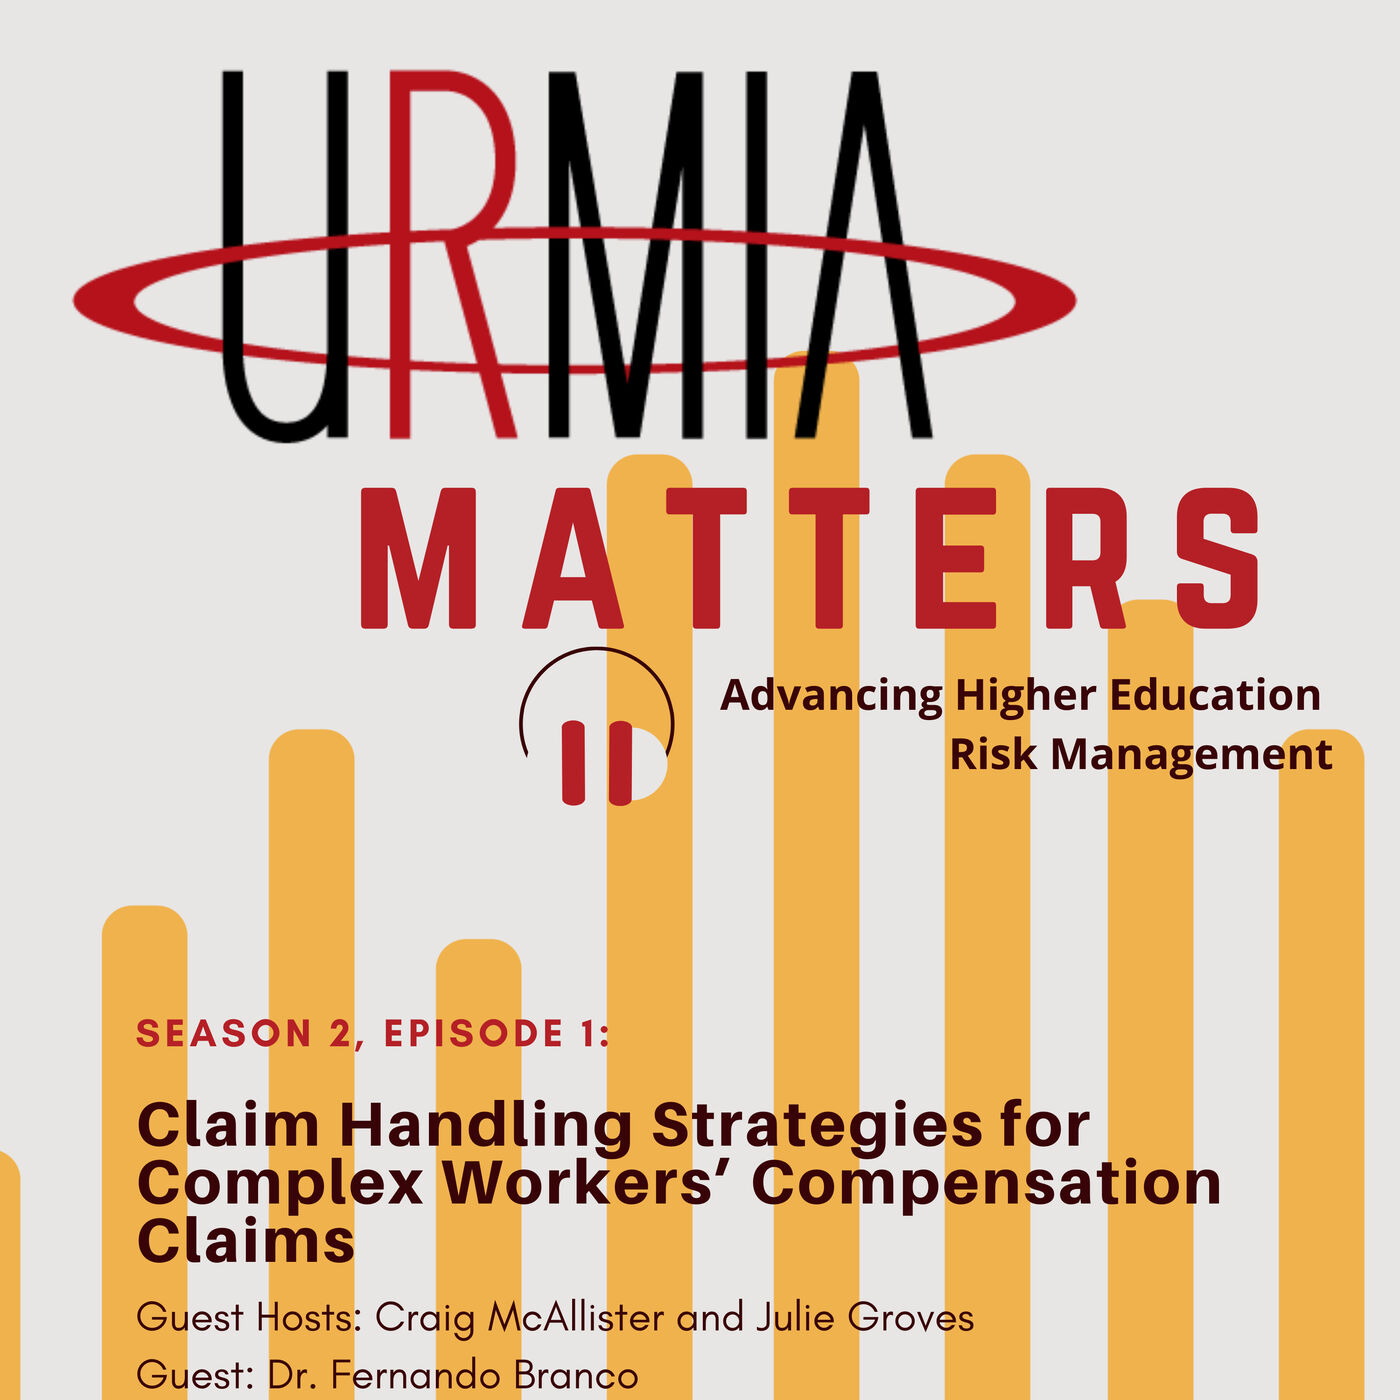 Claim Handling Strategies for Complex Workers' Compensation Claims